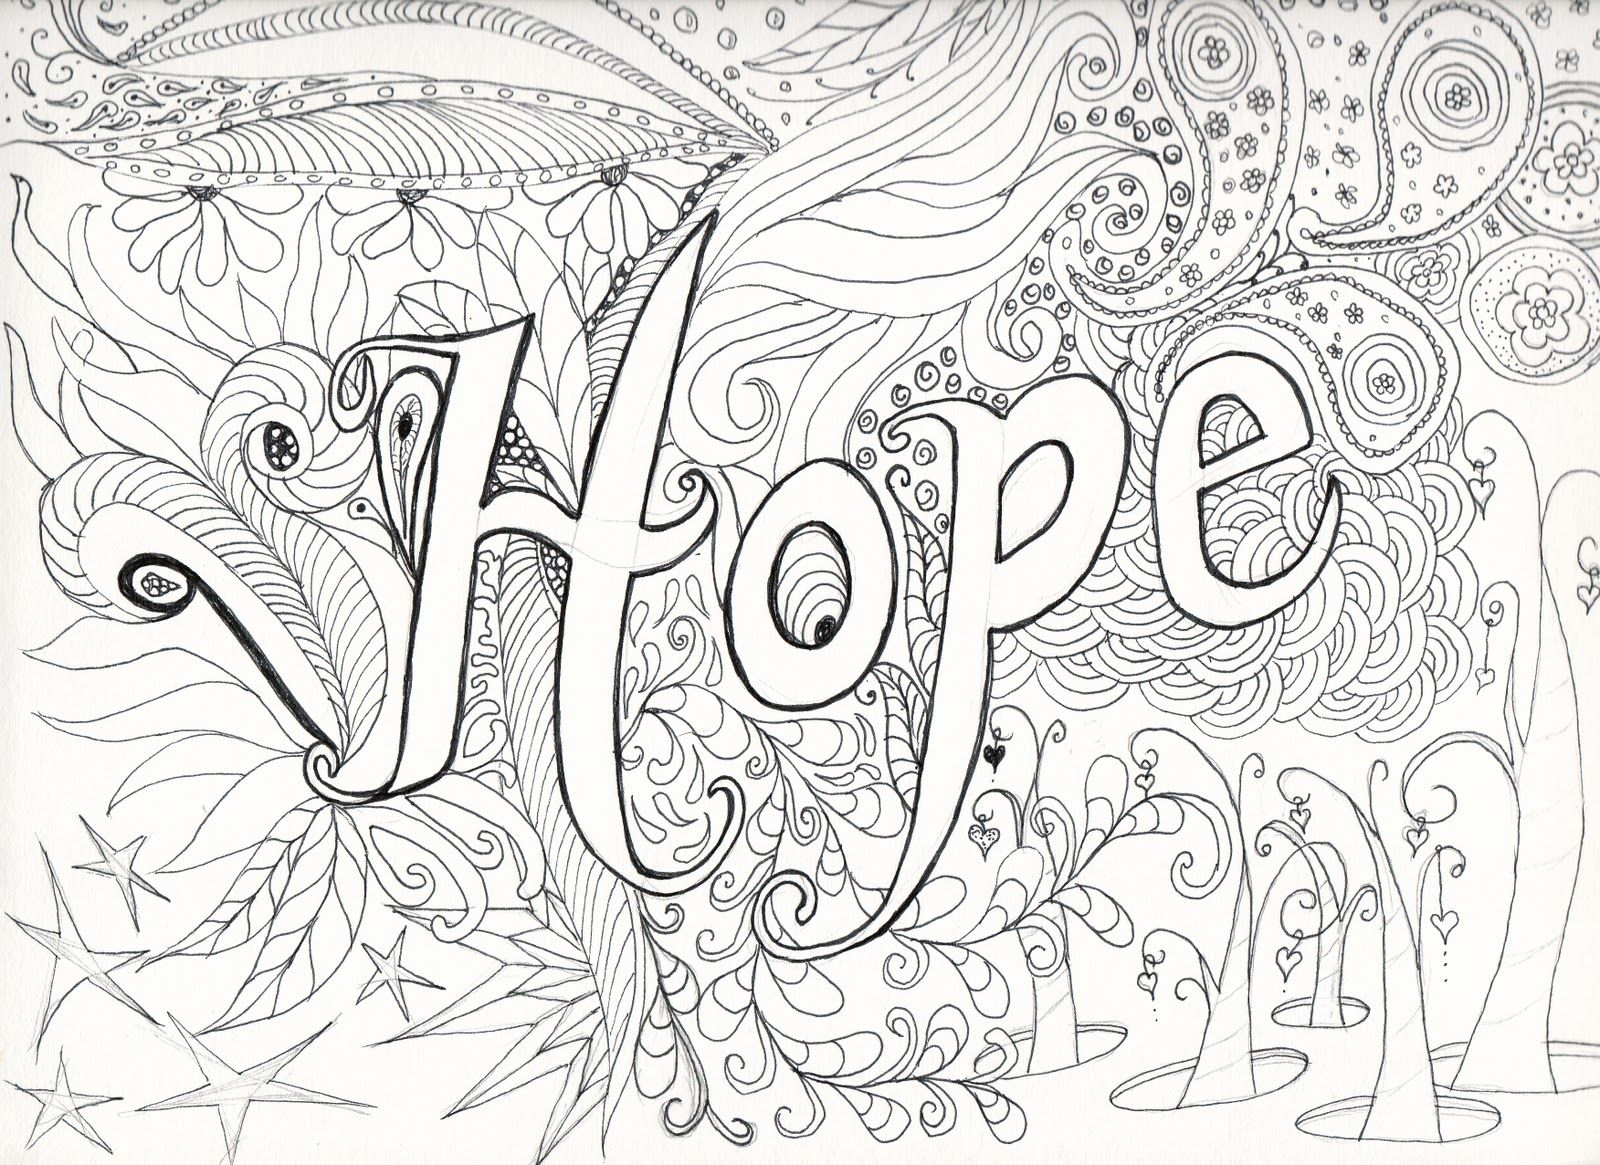 Hard Coloring Pages - Free Large Images | Coloring Pages | Pinterest - Free Printable Hard Coloring Pages For Adults